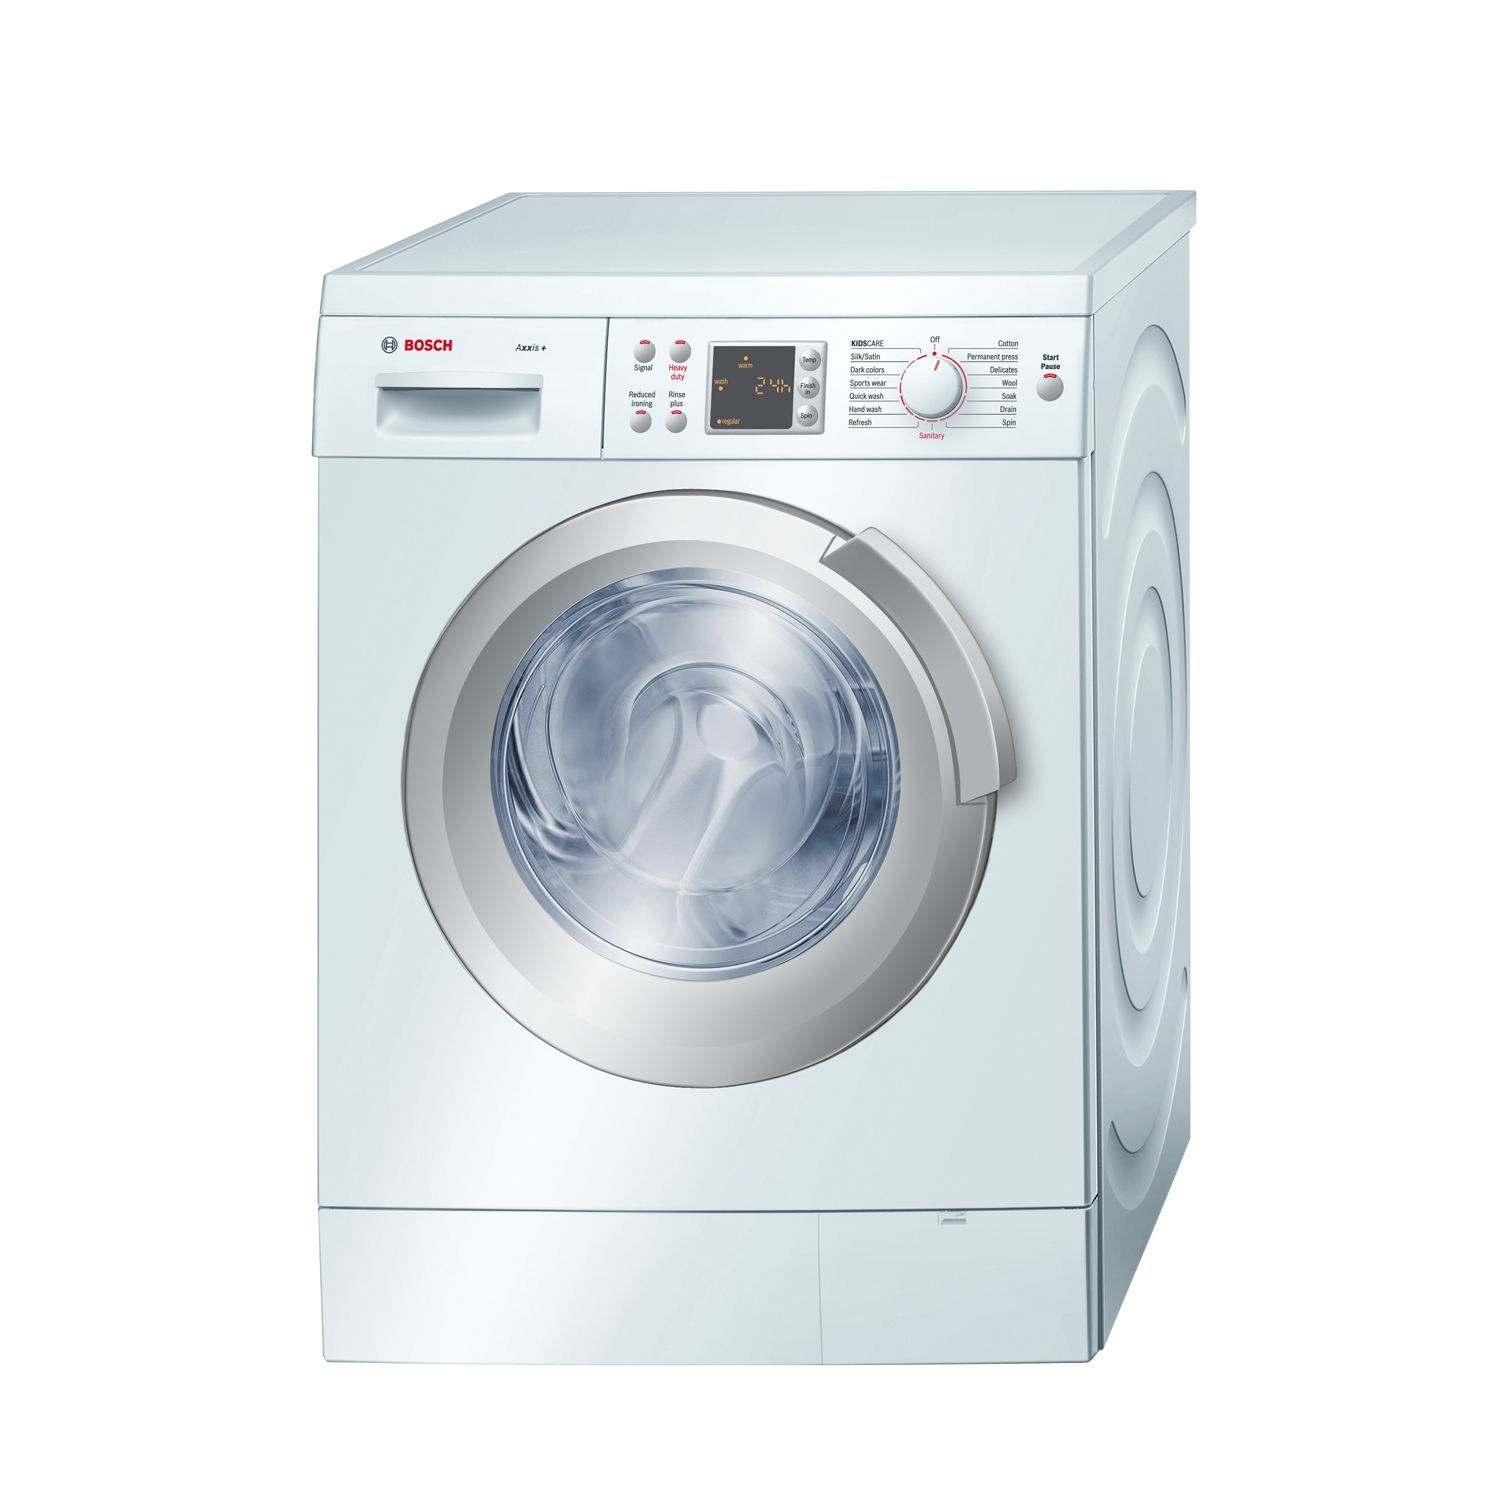 Bosch Axxis 2 2 cu ft Front load Washer White ENERGY STAR Sears